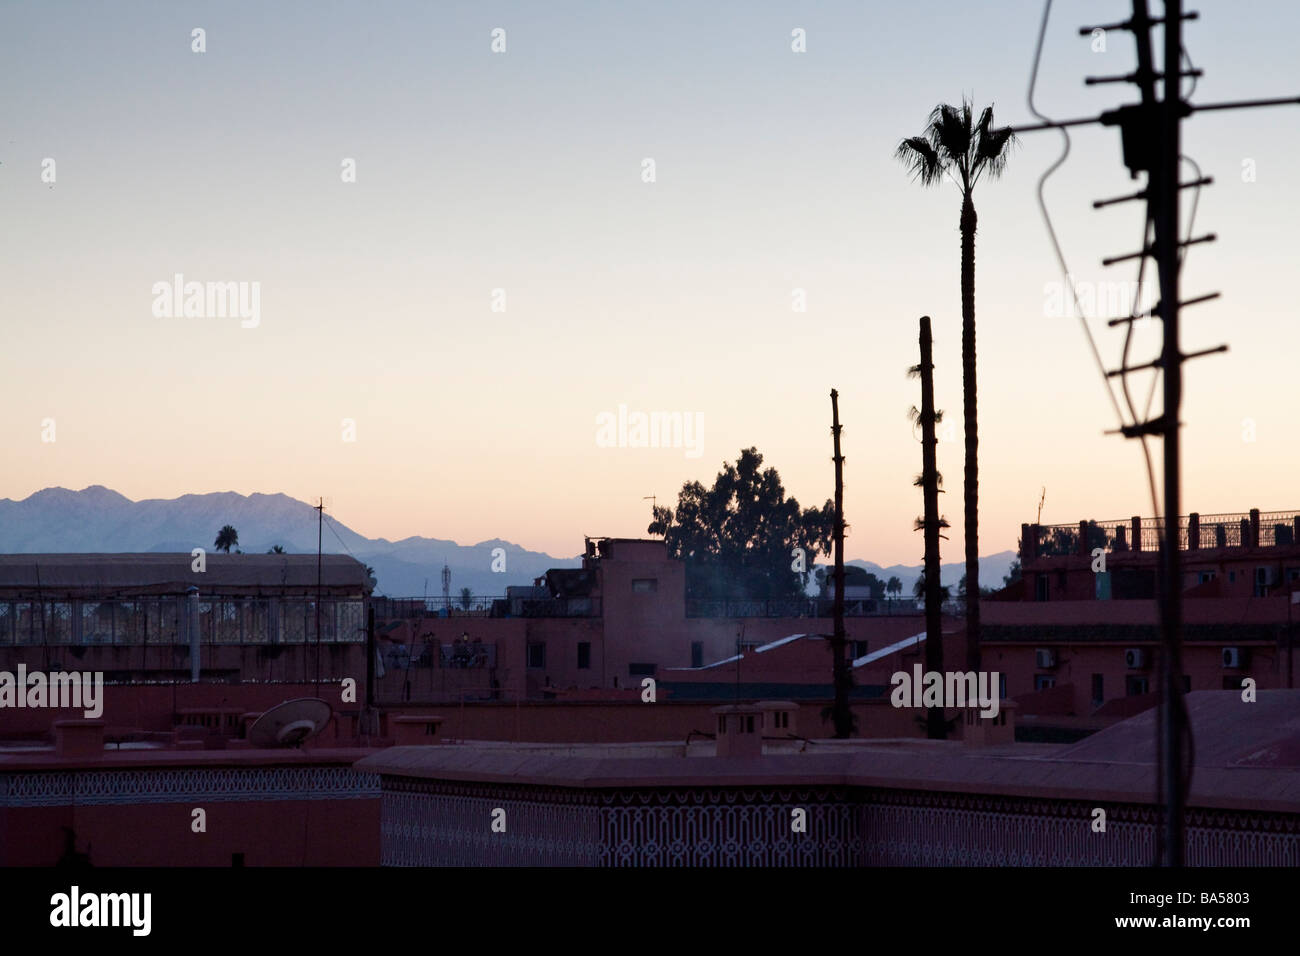 Early morning sunrise in the Medina of Marrakech with the Atlas mountains in the background - Stock Image